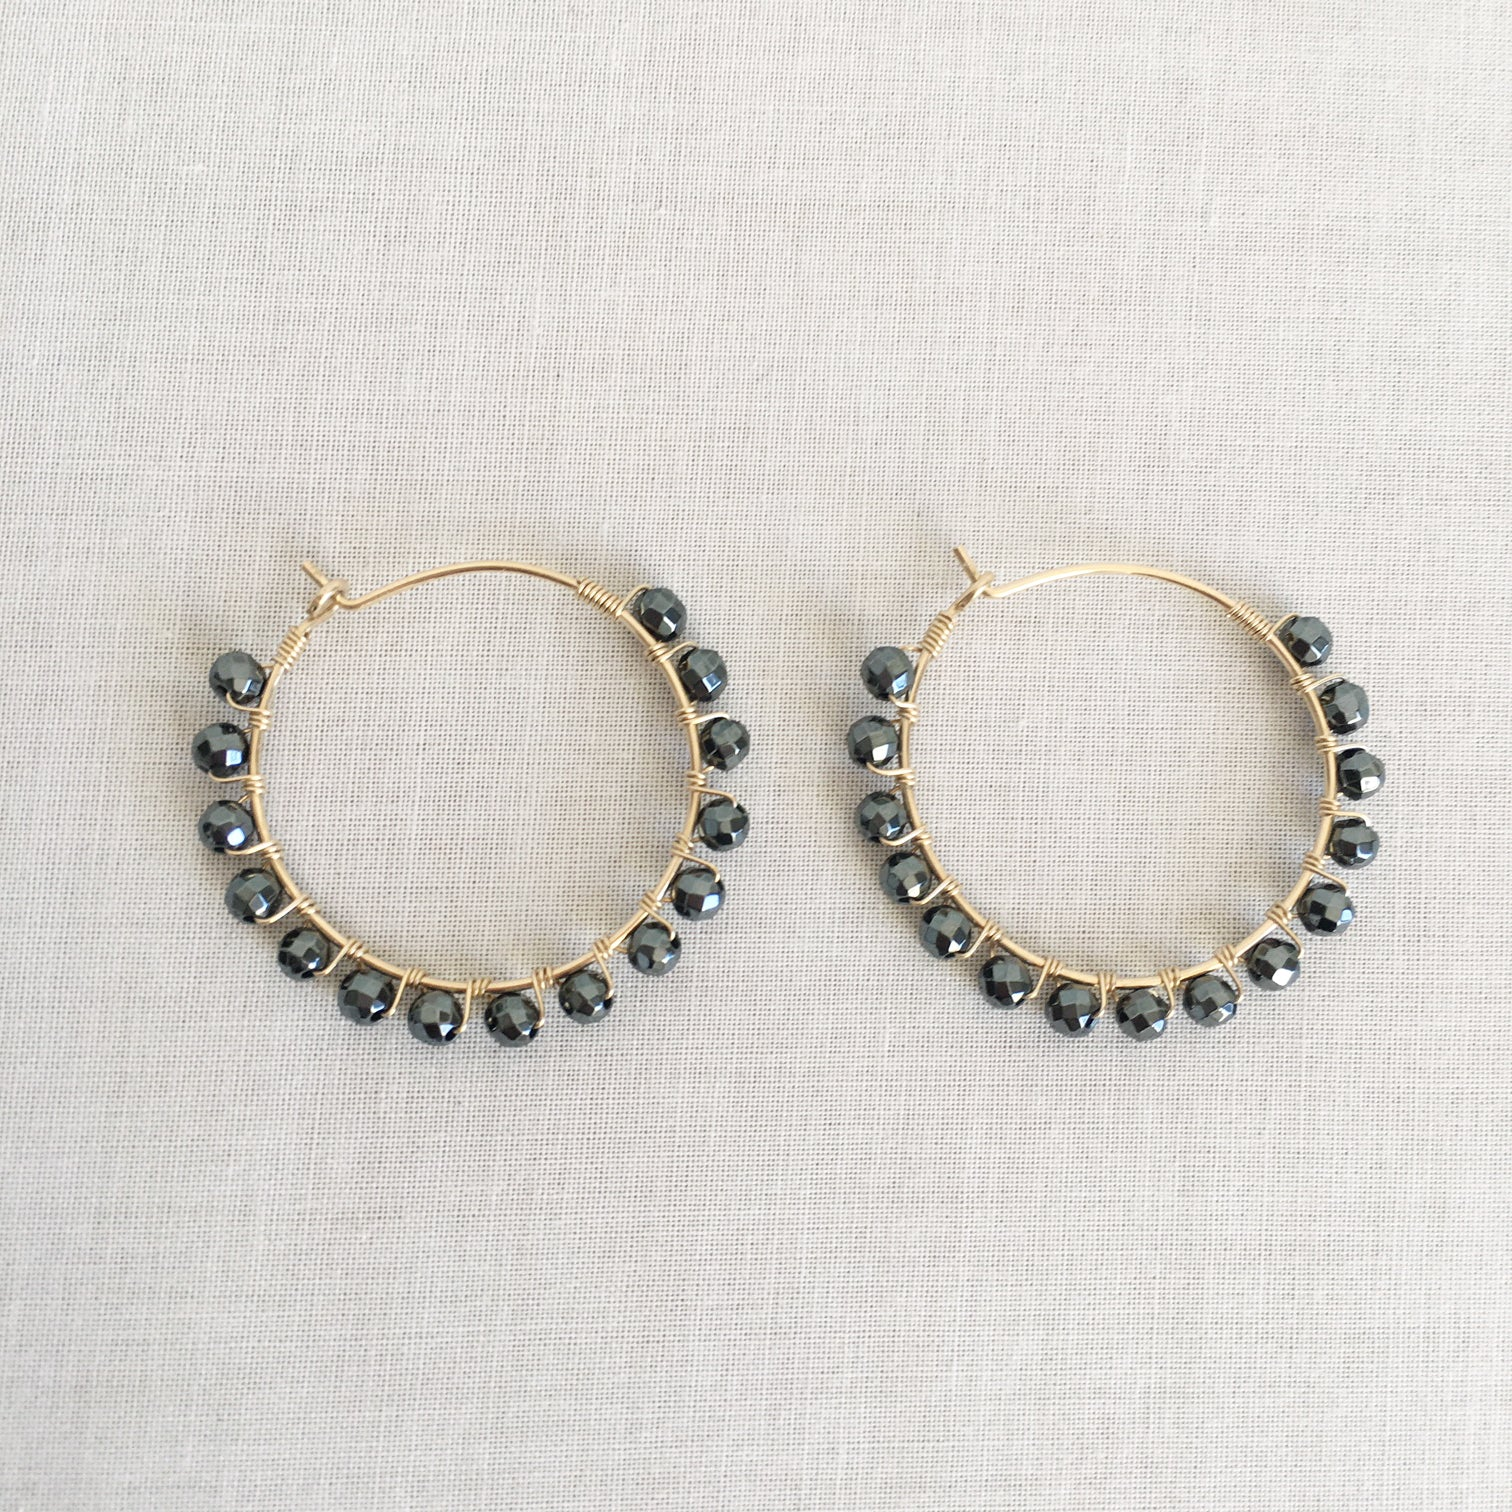 Hematite hoop earrings protects you from EMF